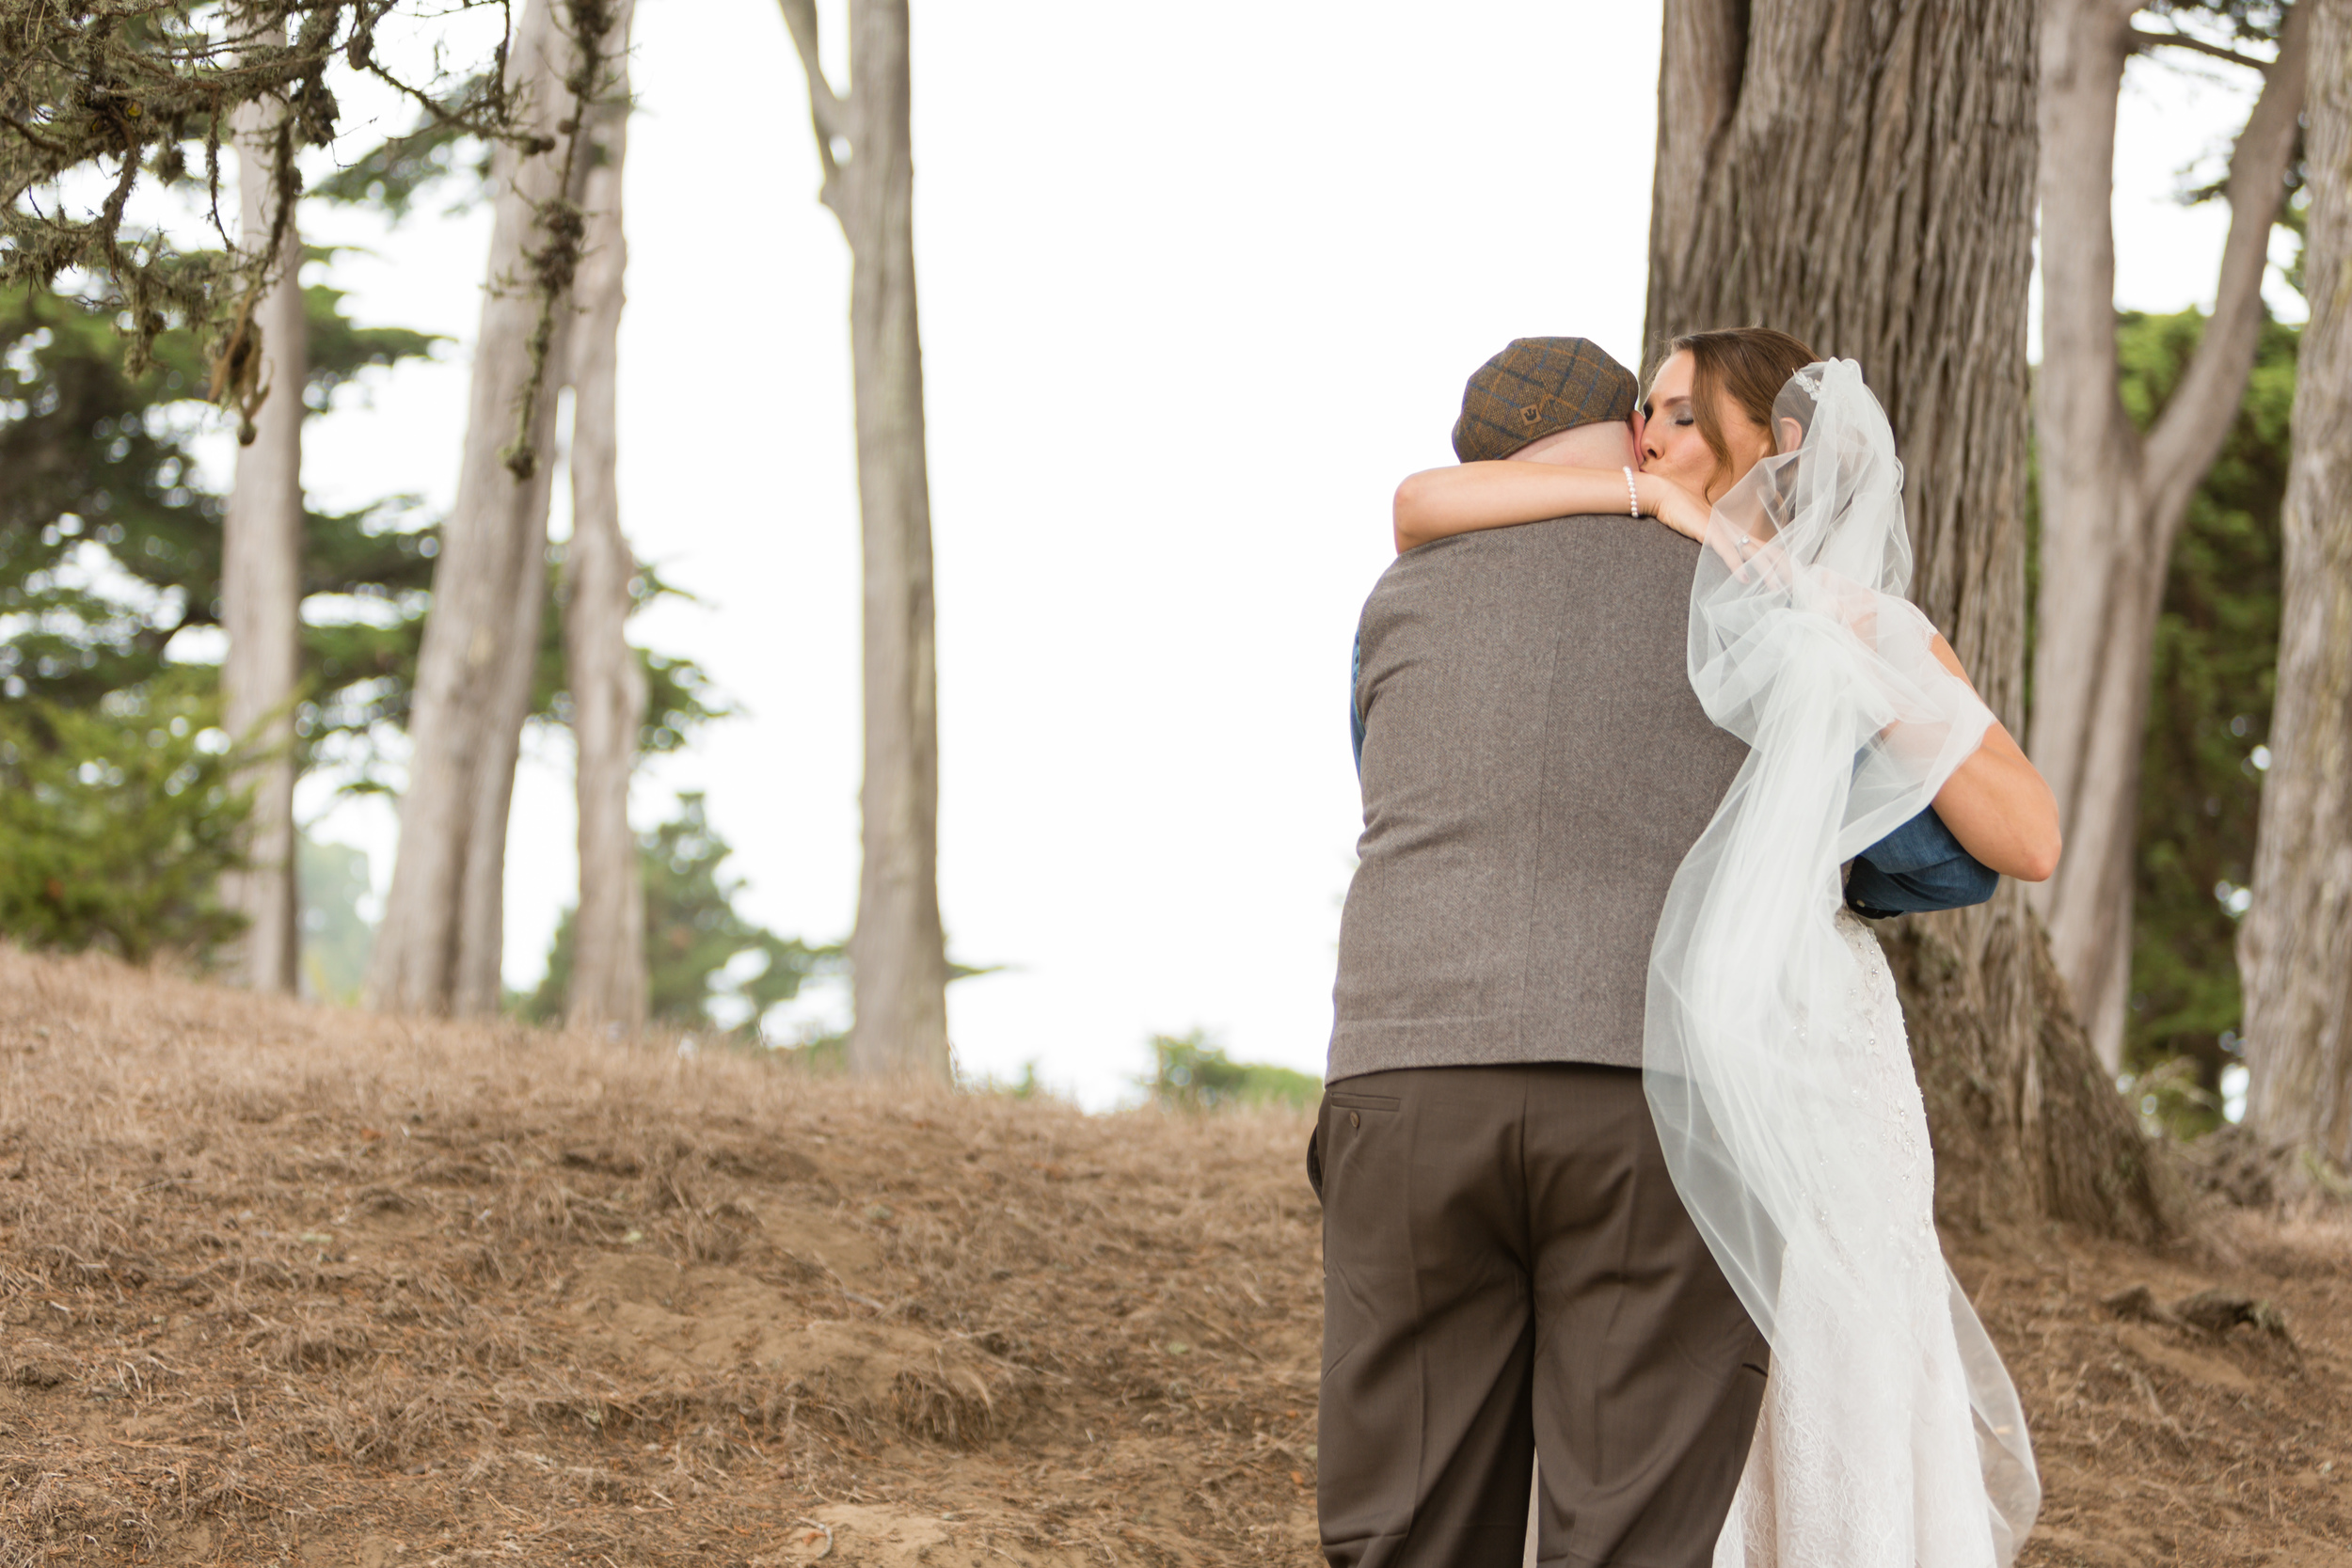 jenni-stephen-wedding-mt-tam-marin-96.jpg